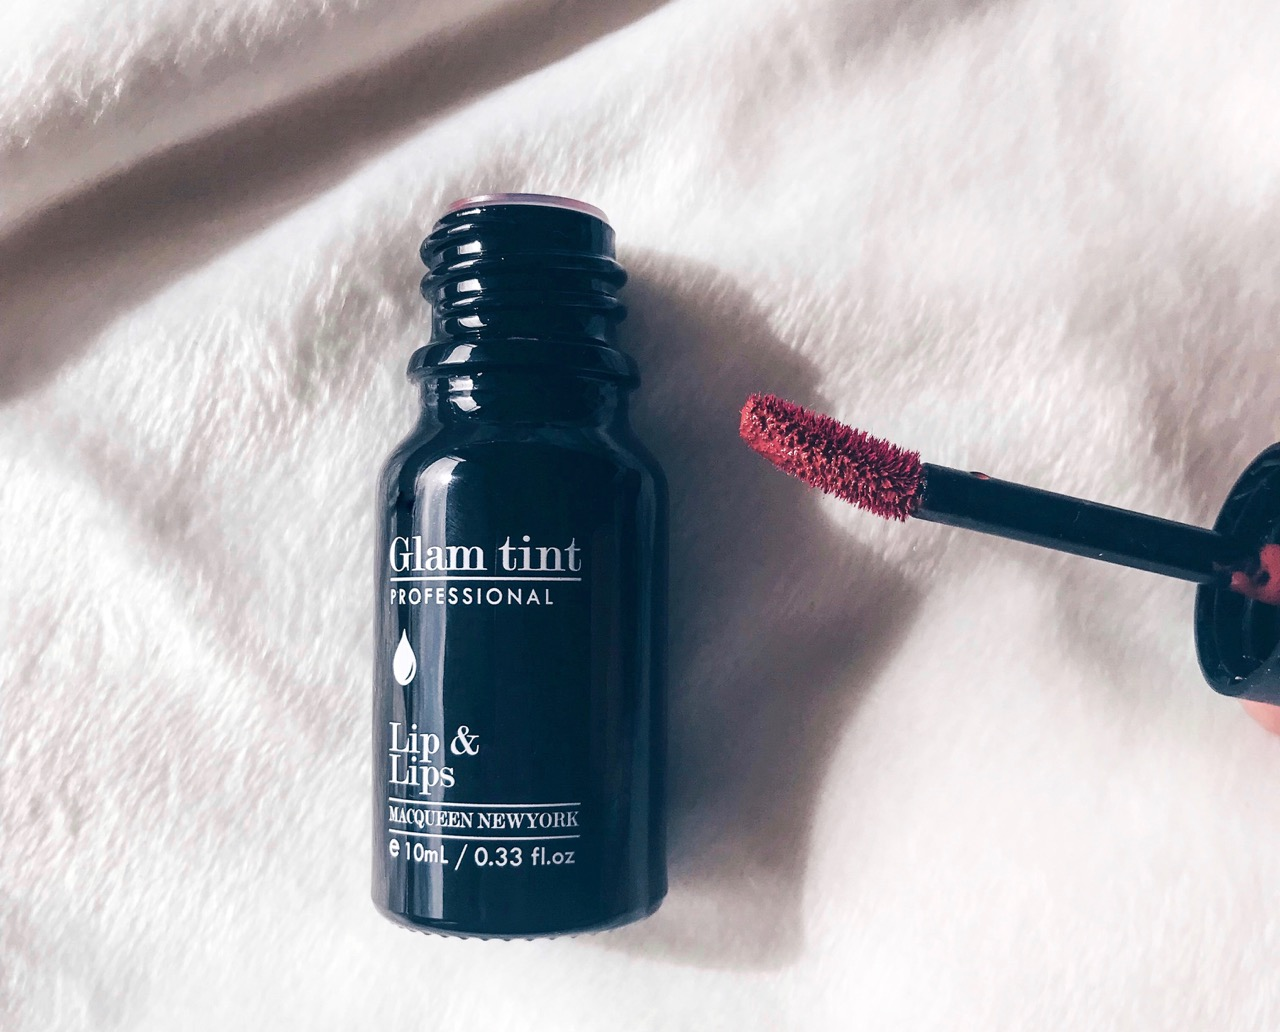 Beauty Favoriten Februar 2019: MacQueen Glam Tint